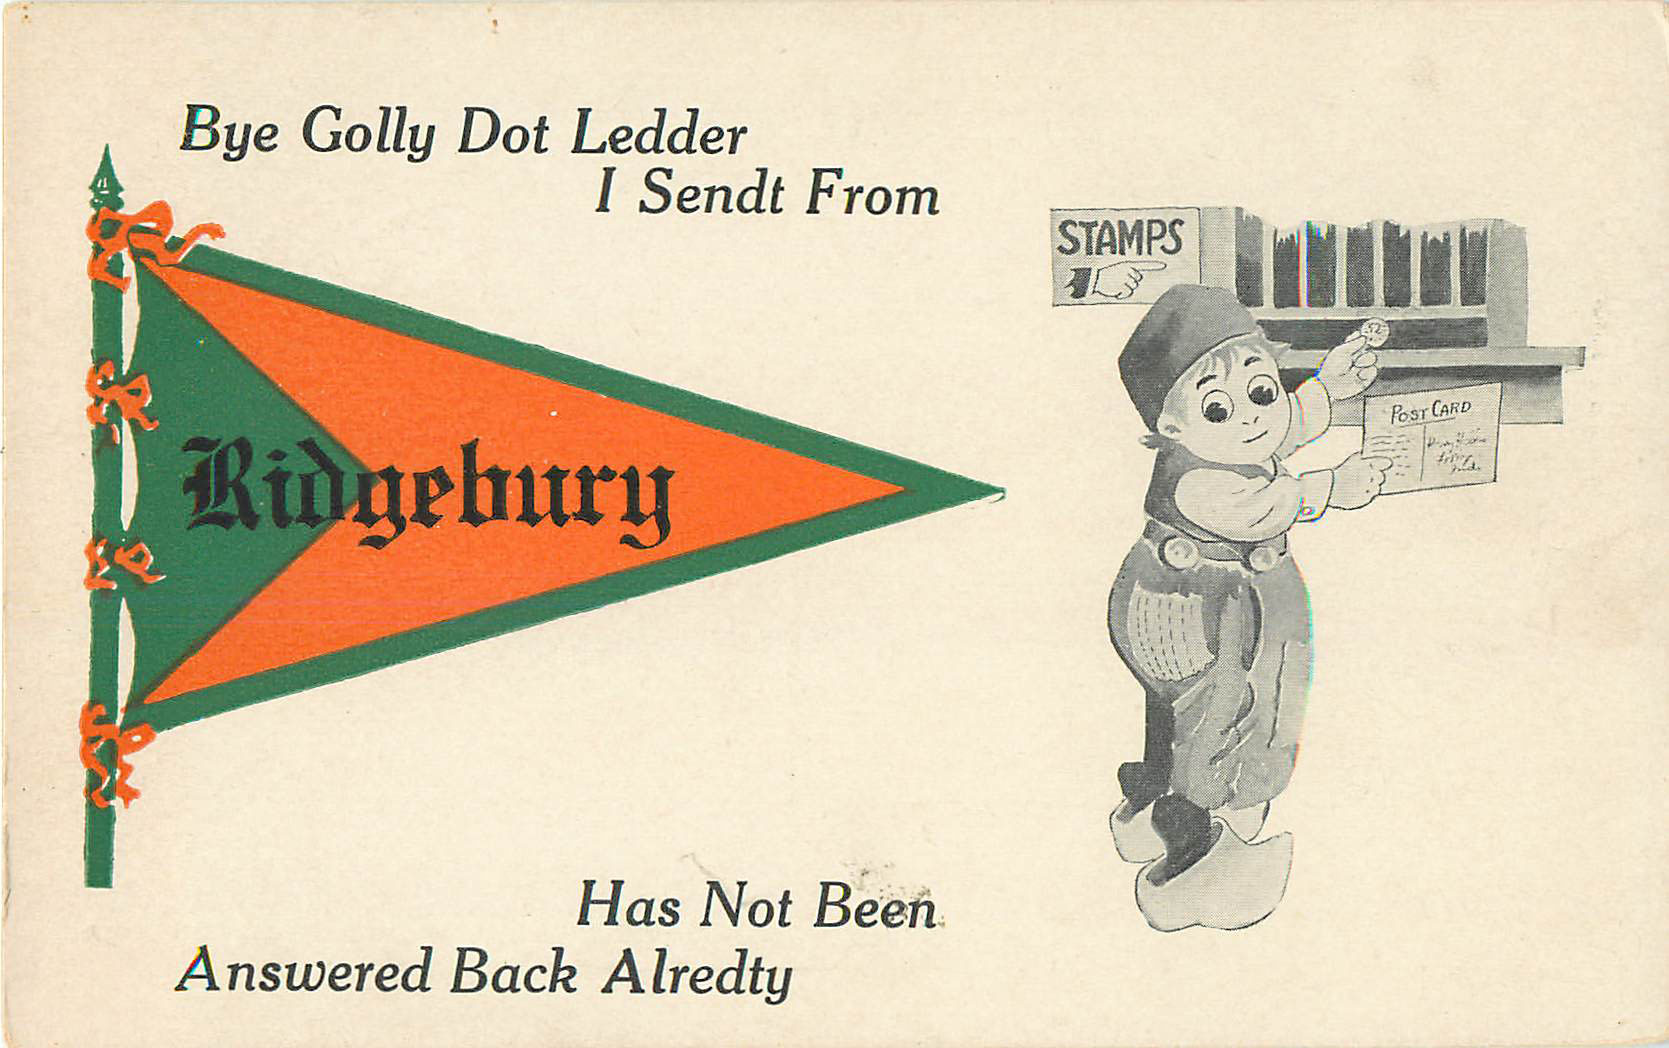 By Golly Dot Ledder I Sendt From Ridgebury - Pennant Postcard